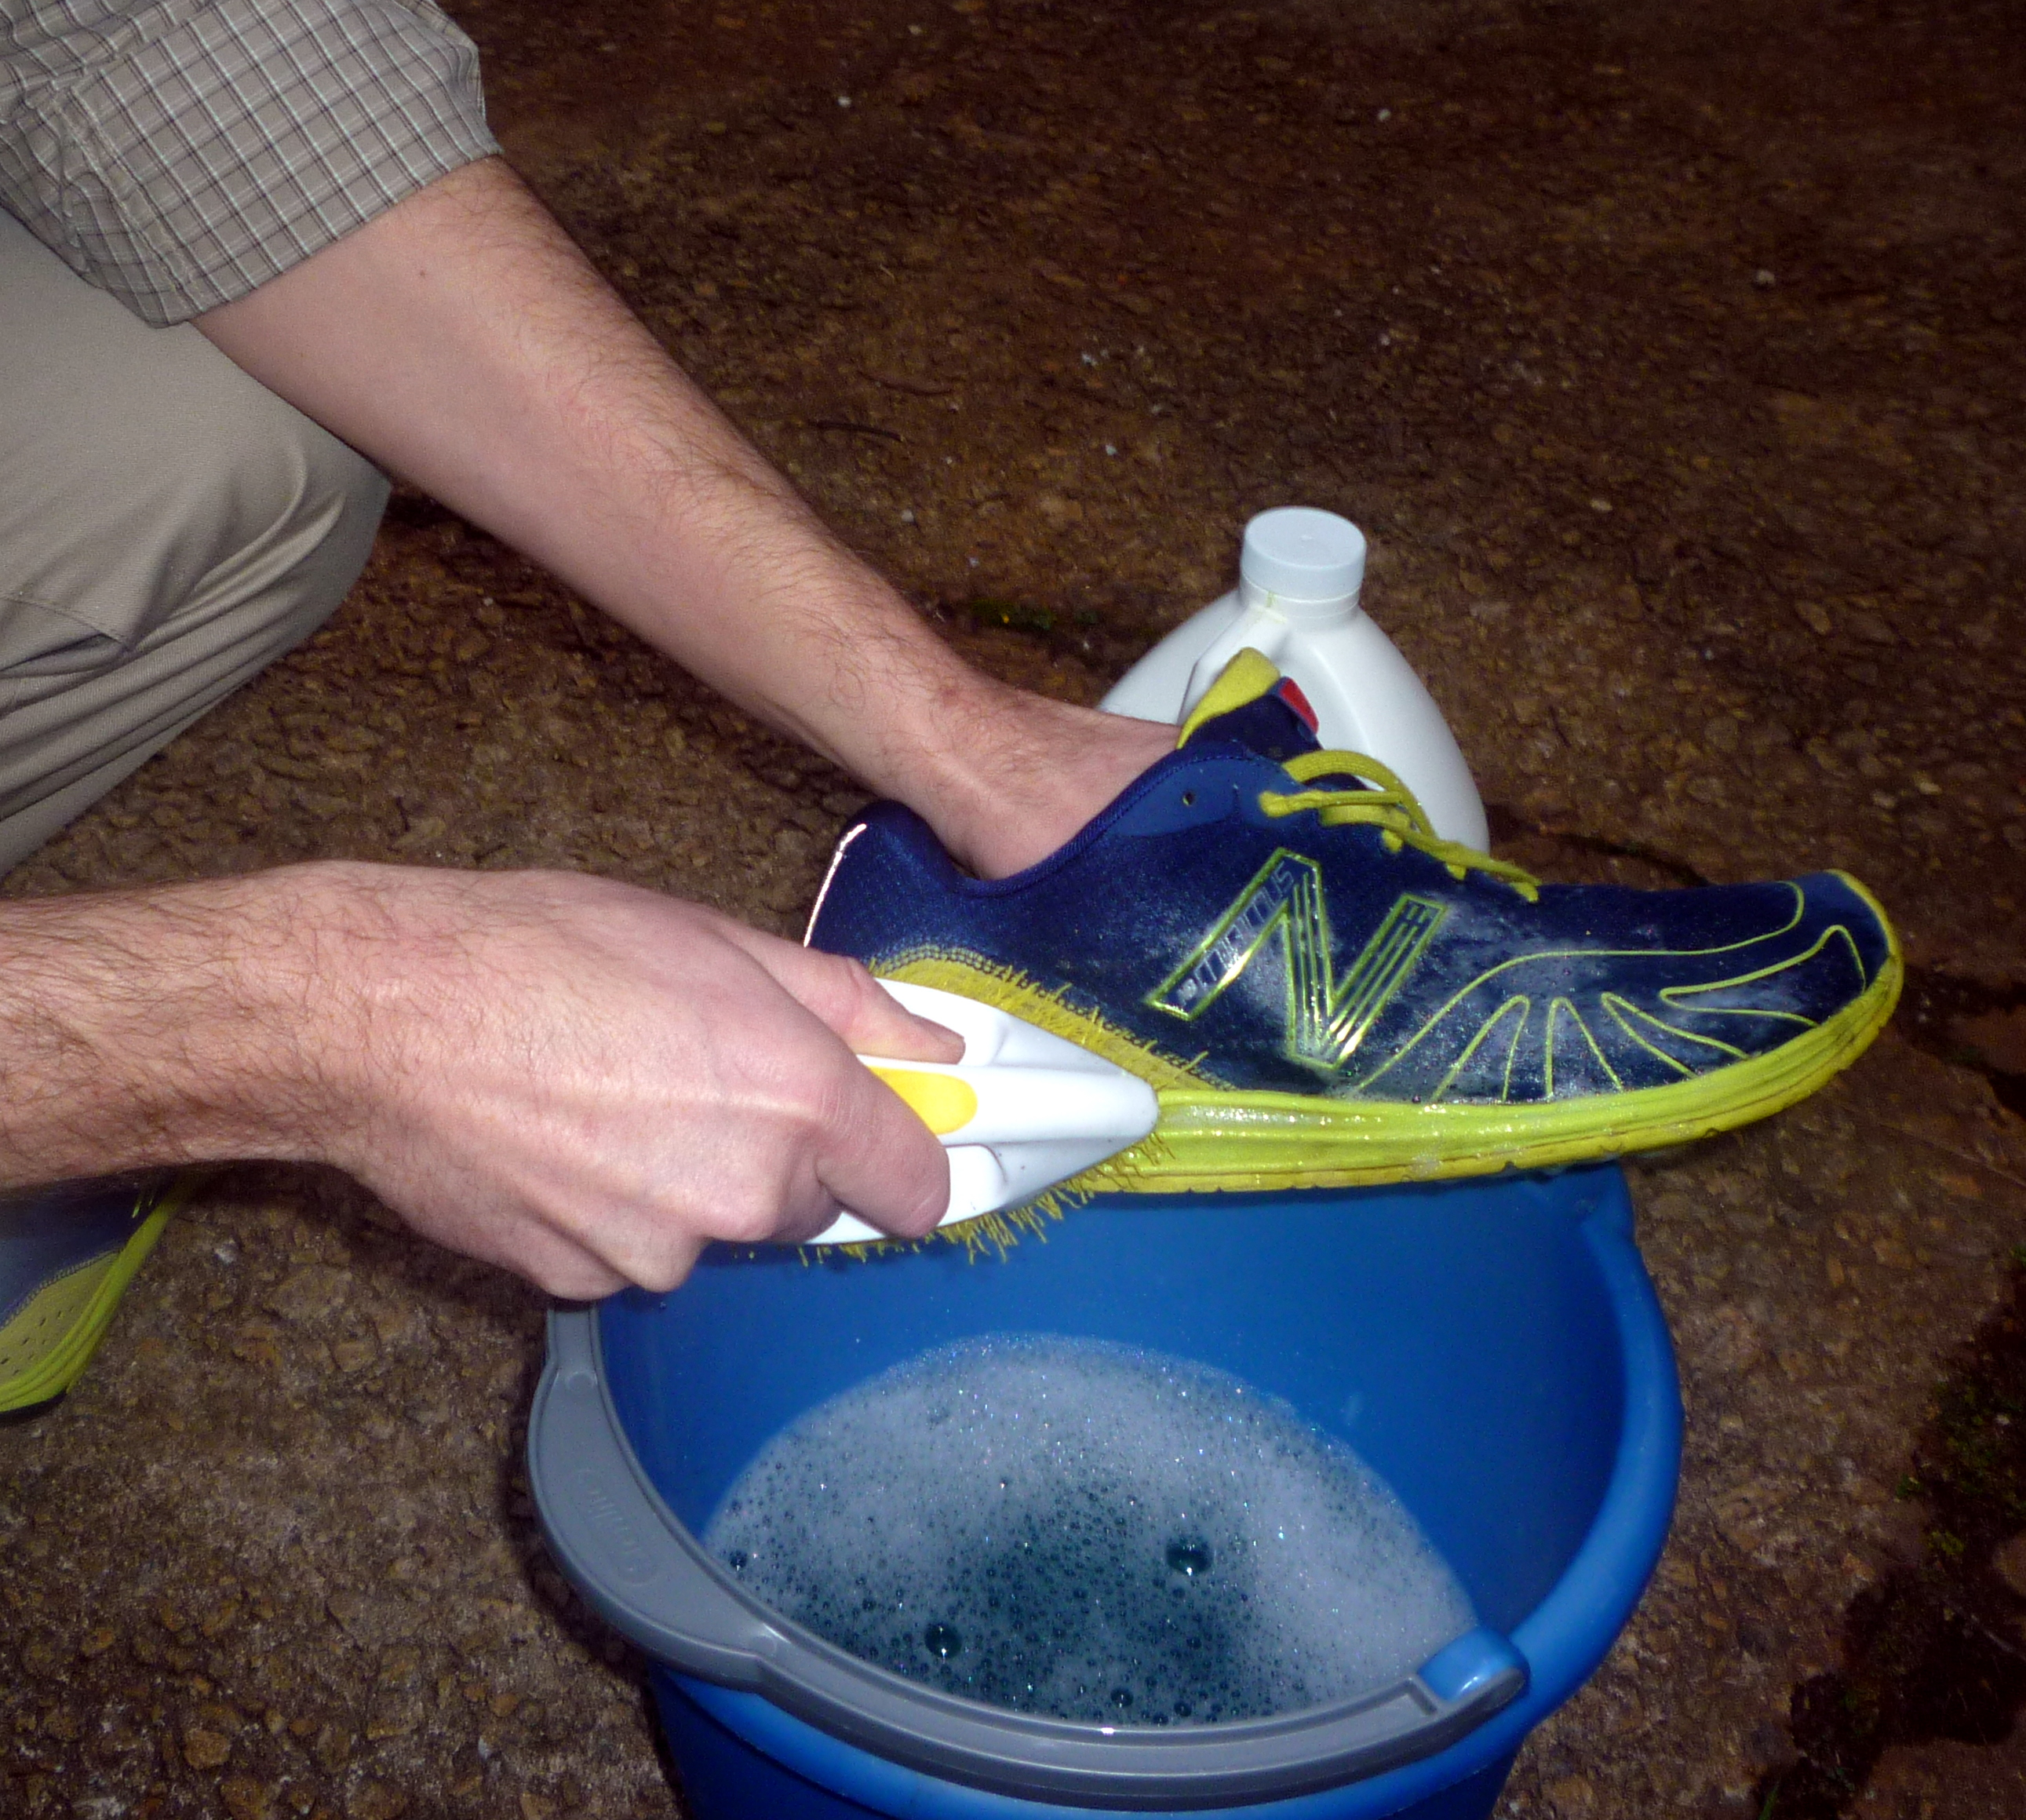 Cleaning your running clothes and gear the run commuter scrub ccuart Image collections